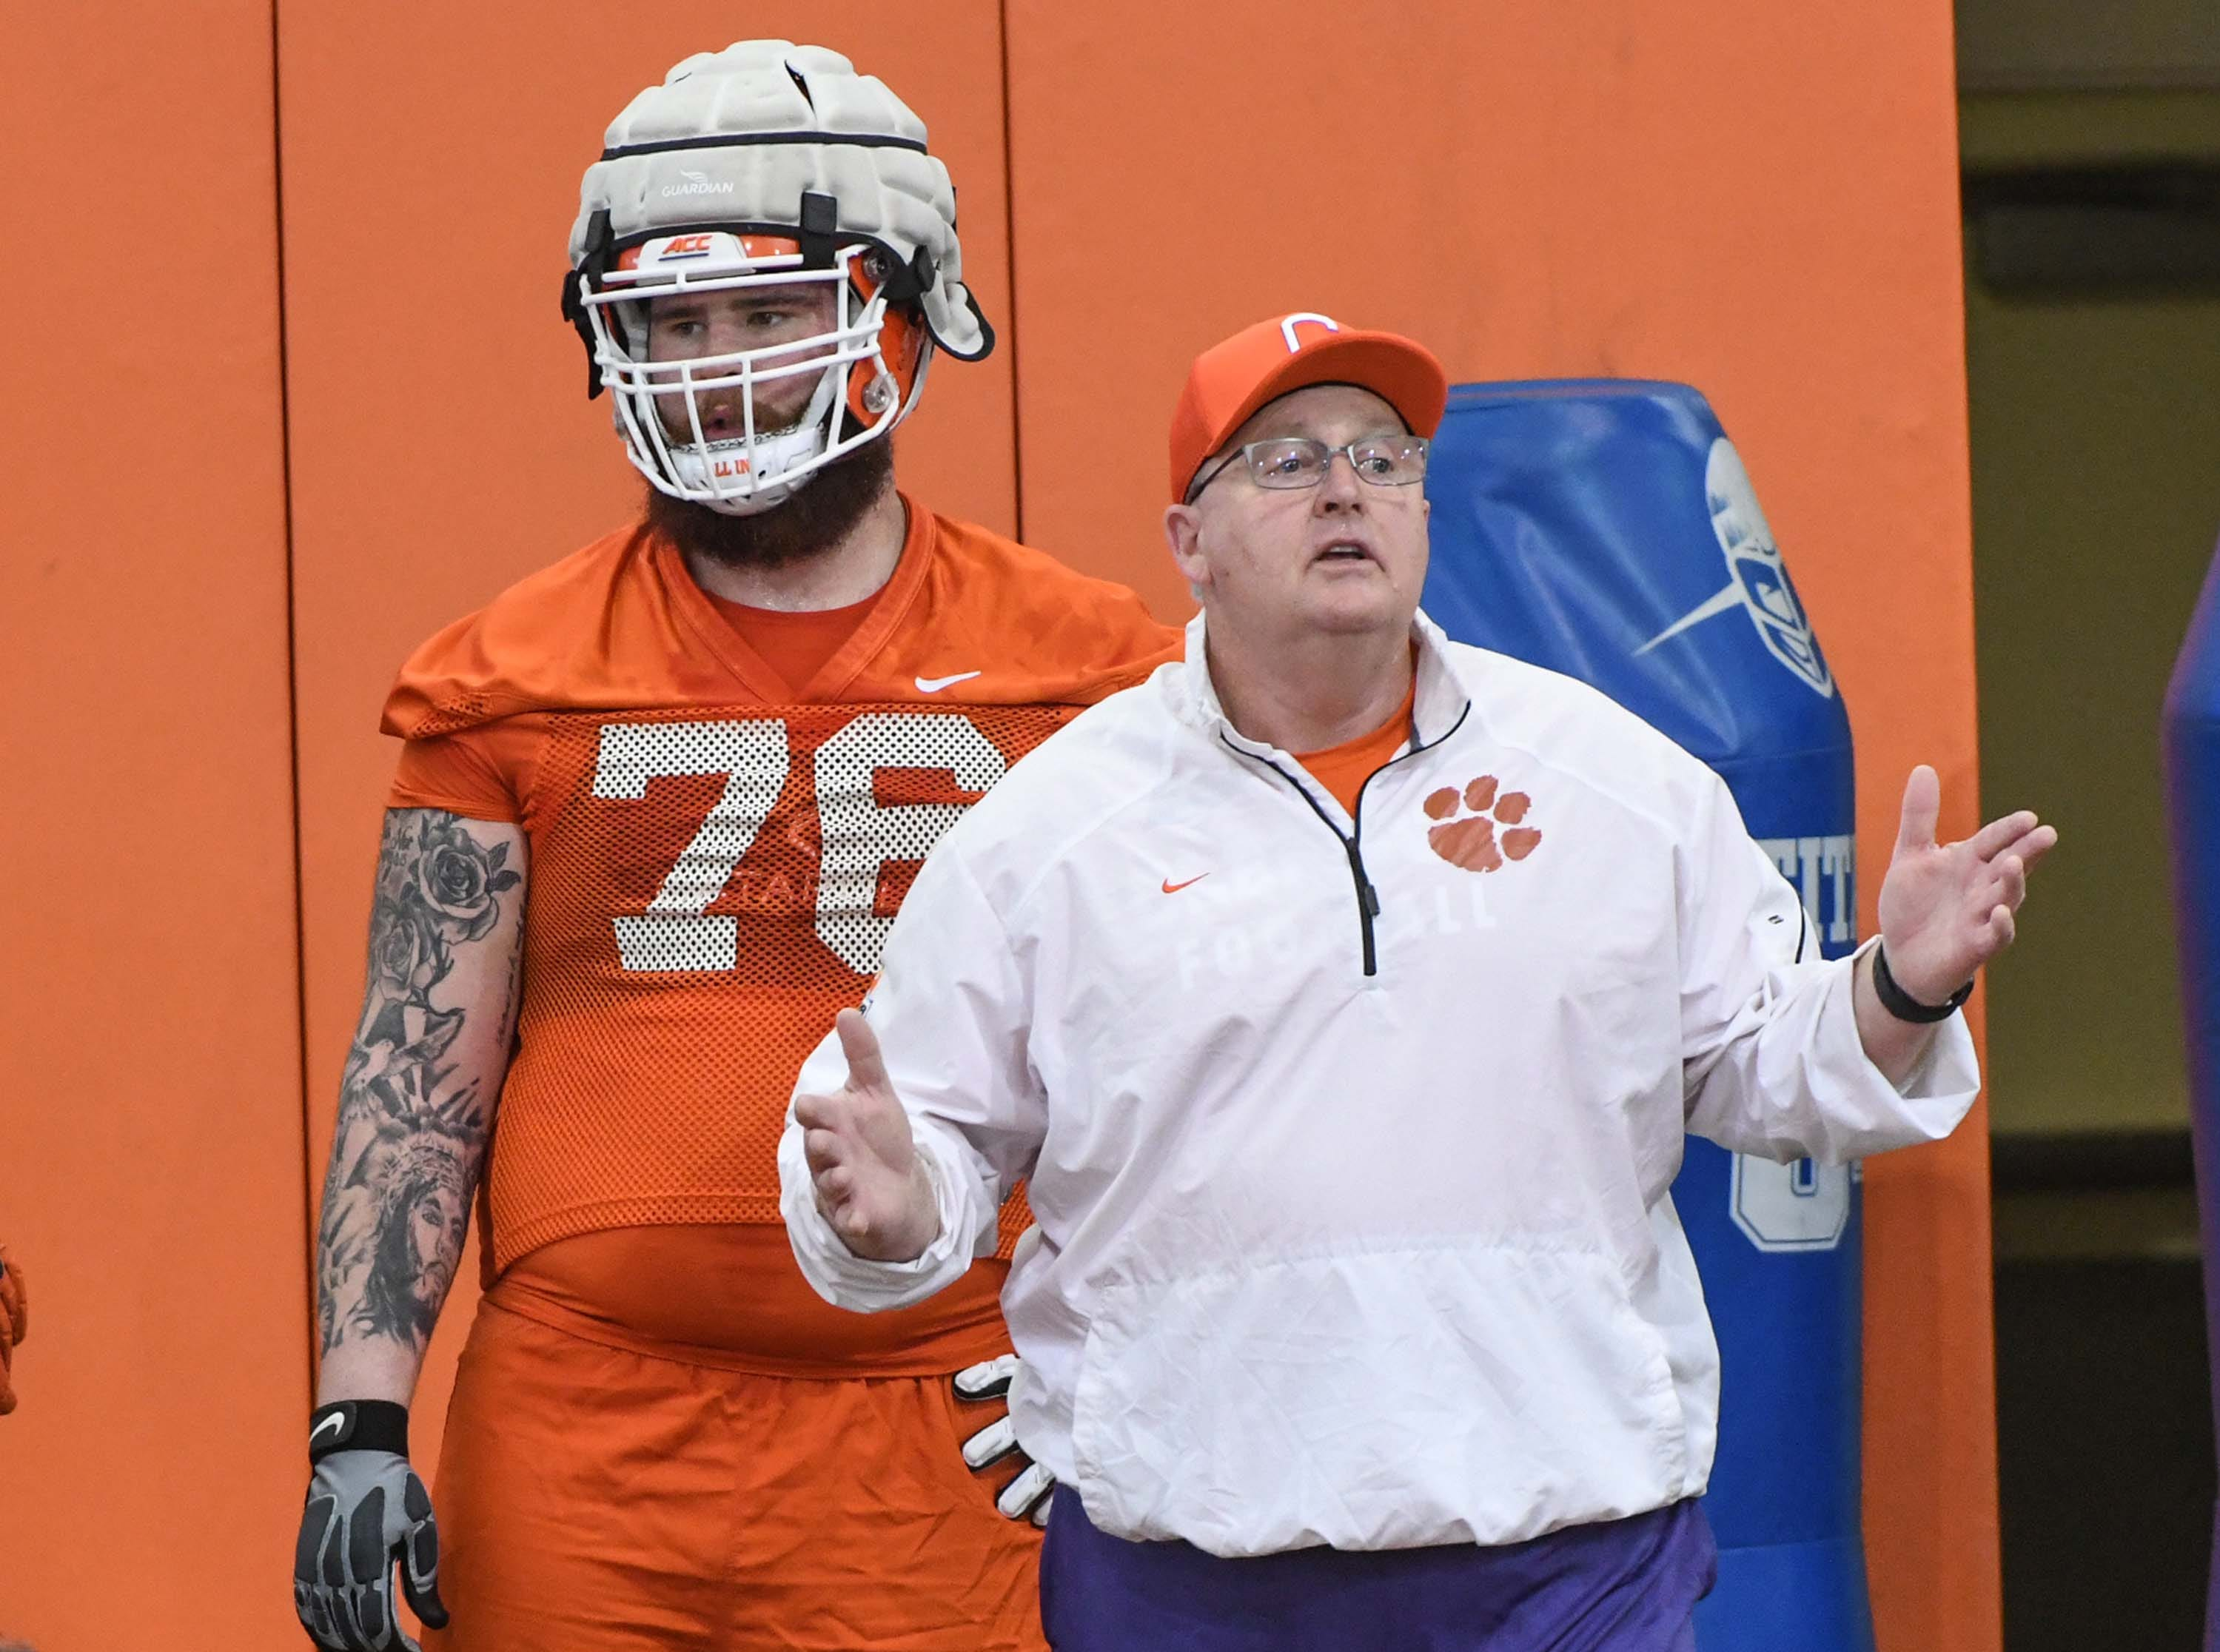 Clemson offensive lineman Sean Pollard (76) stands near coach Robbie Caldwell during the first practice at the Clemson Indoor Practice Facility in Clemson Wednesday, February 27, 2019.